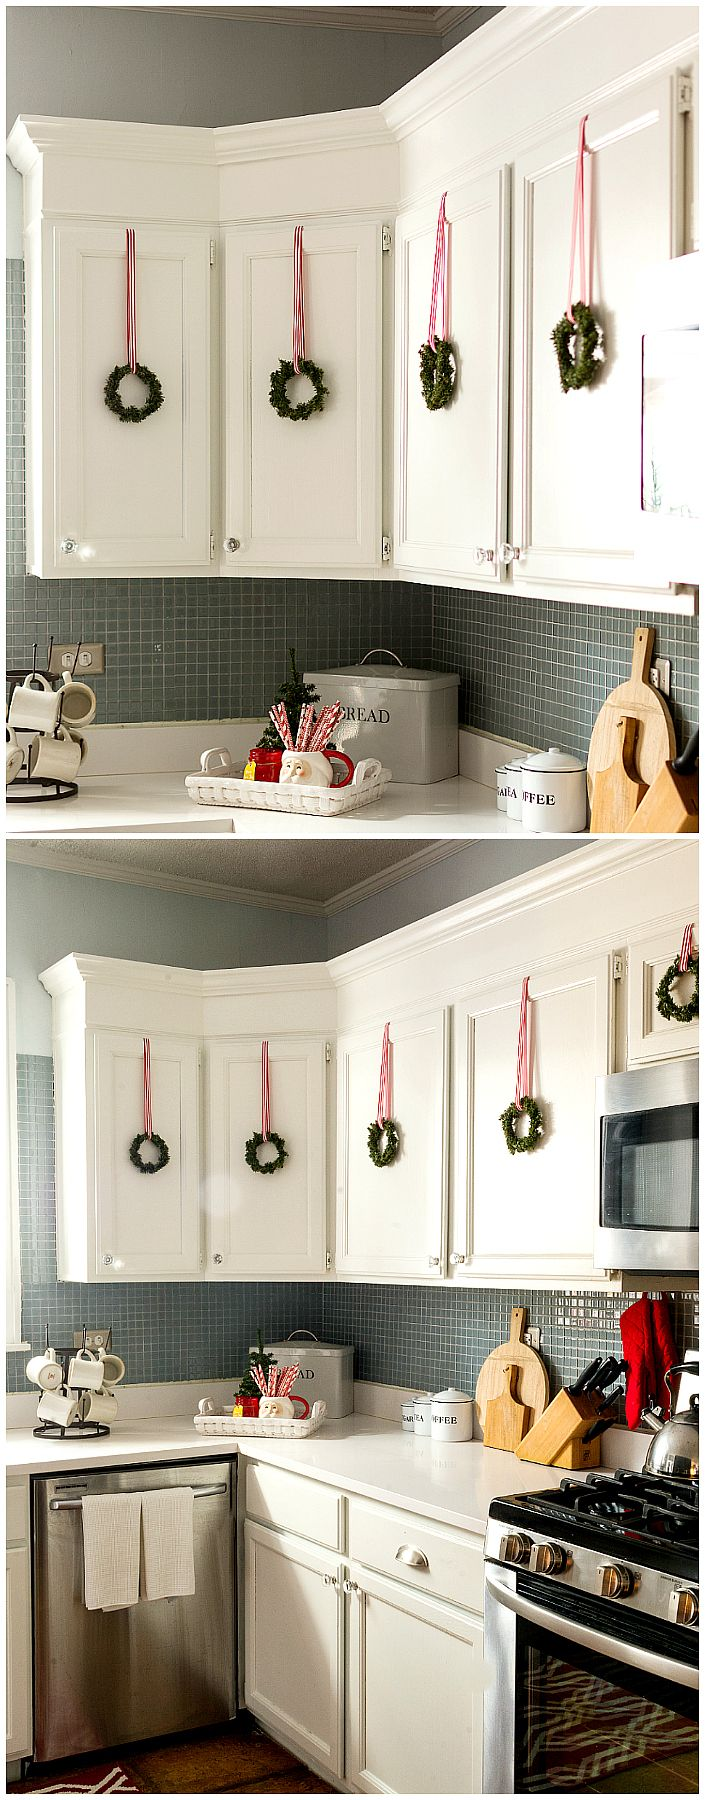 decorating with wreaths indoors christmas kitchen diy christmas decorations for home decor on kitchen cabinets xmas decor id=22006